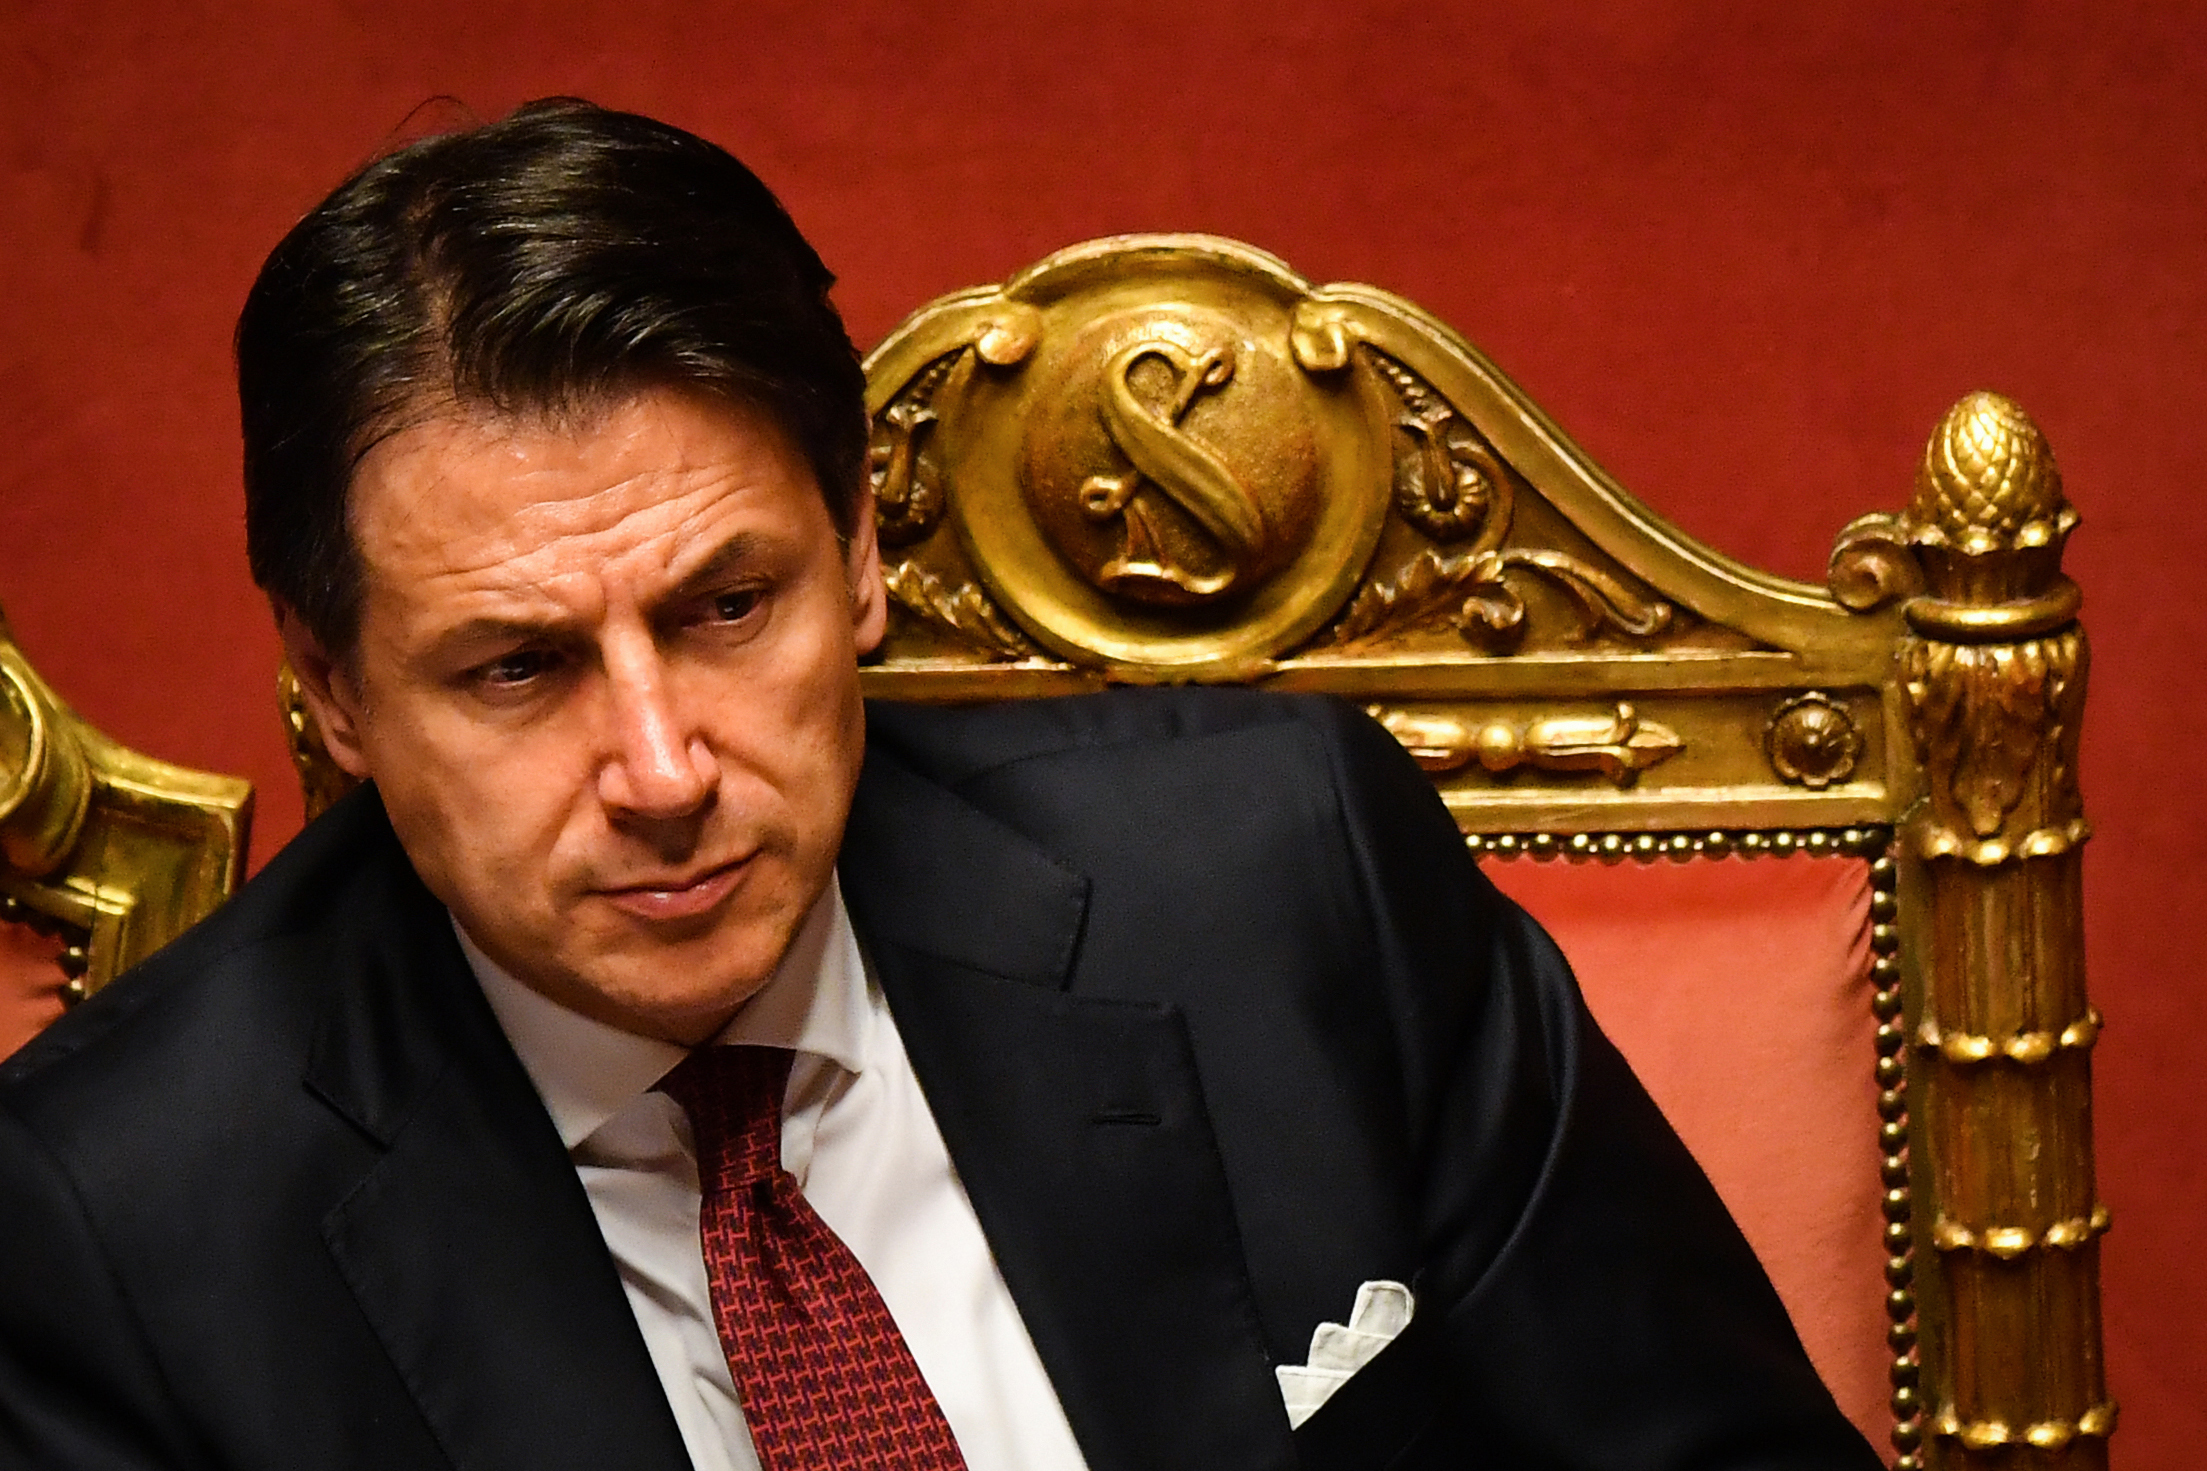 Italian Prime Minister Giuseppe Conte reacts after delivering a speech at the Italian Senate in Rome on Aug. 20, 2019.